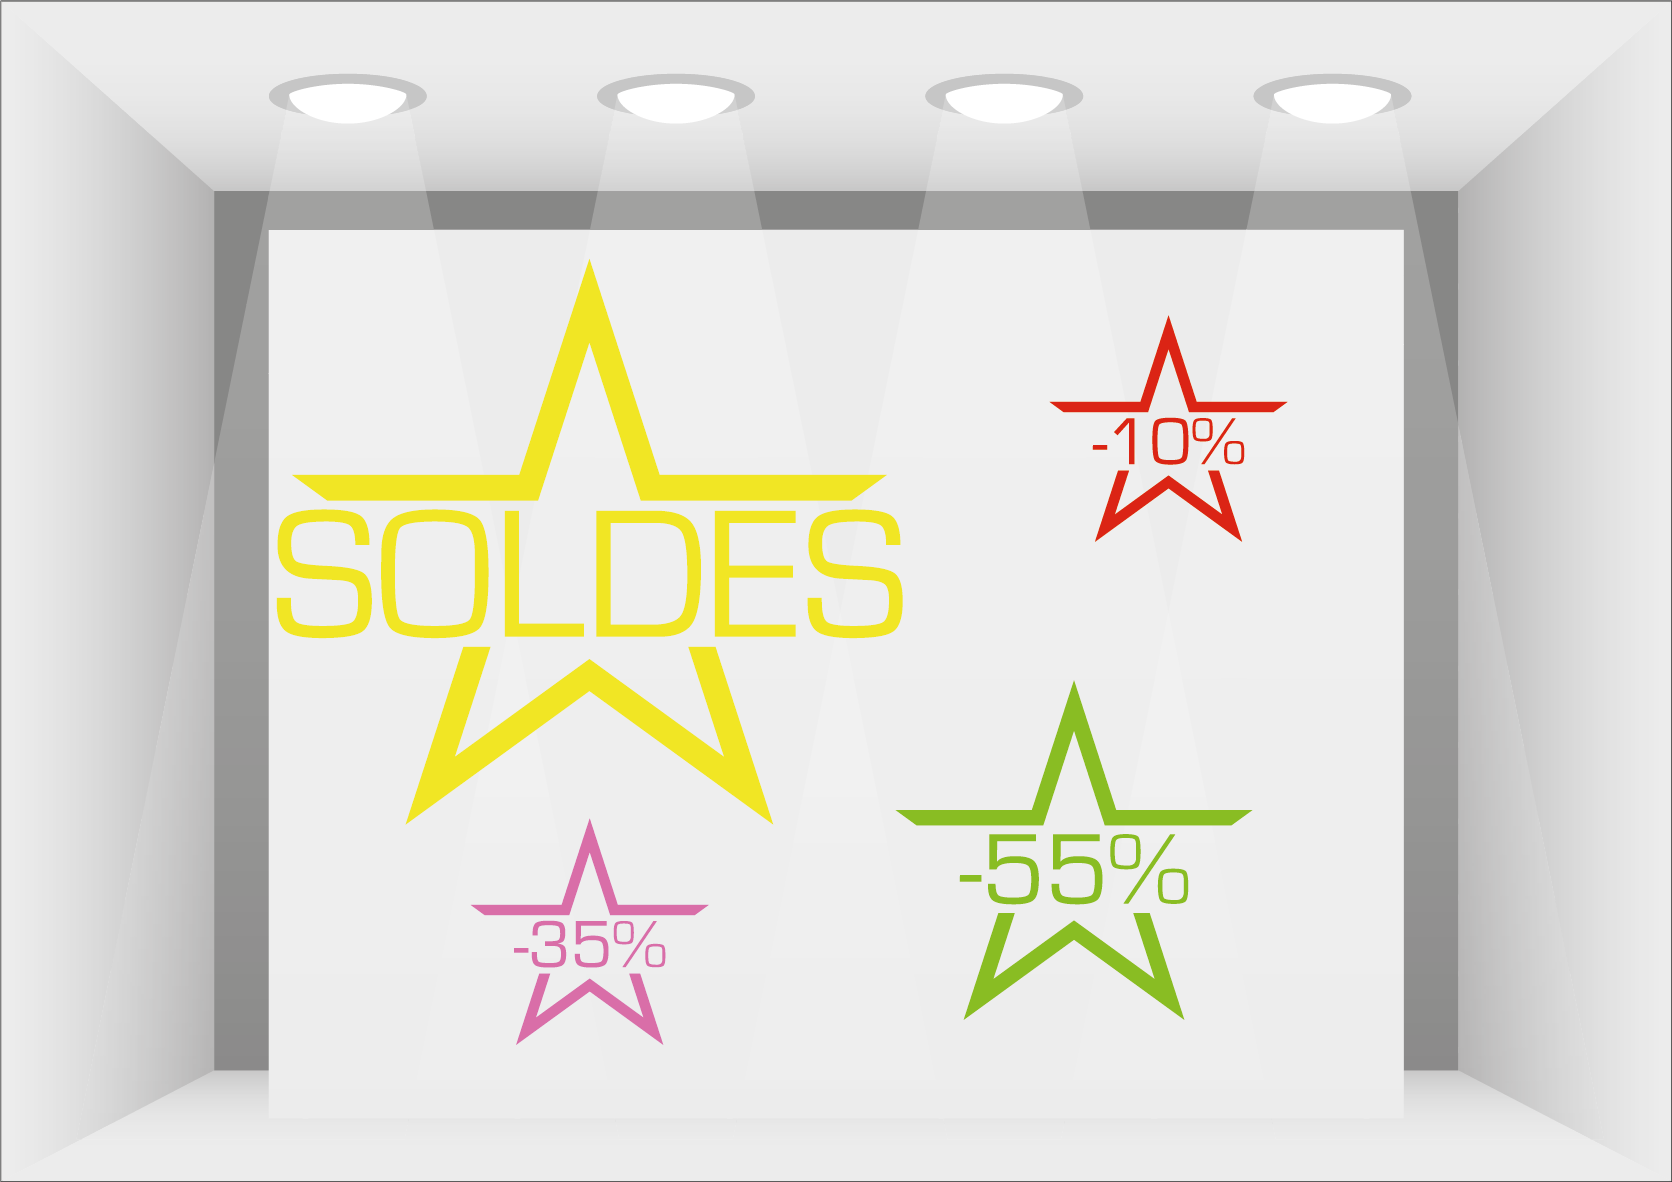 stickers soldes vitrines ultra r sistant petits prix lettres adh sives 26. Black Bedroom Furniture Sets. Home Design Ideas